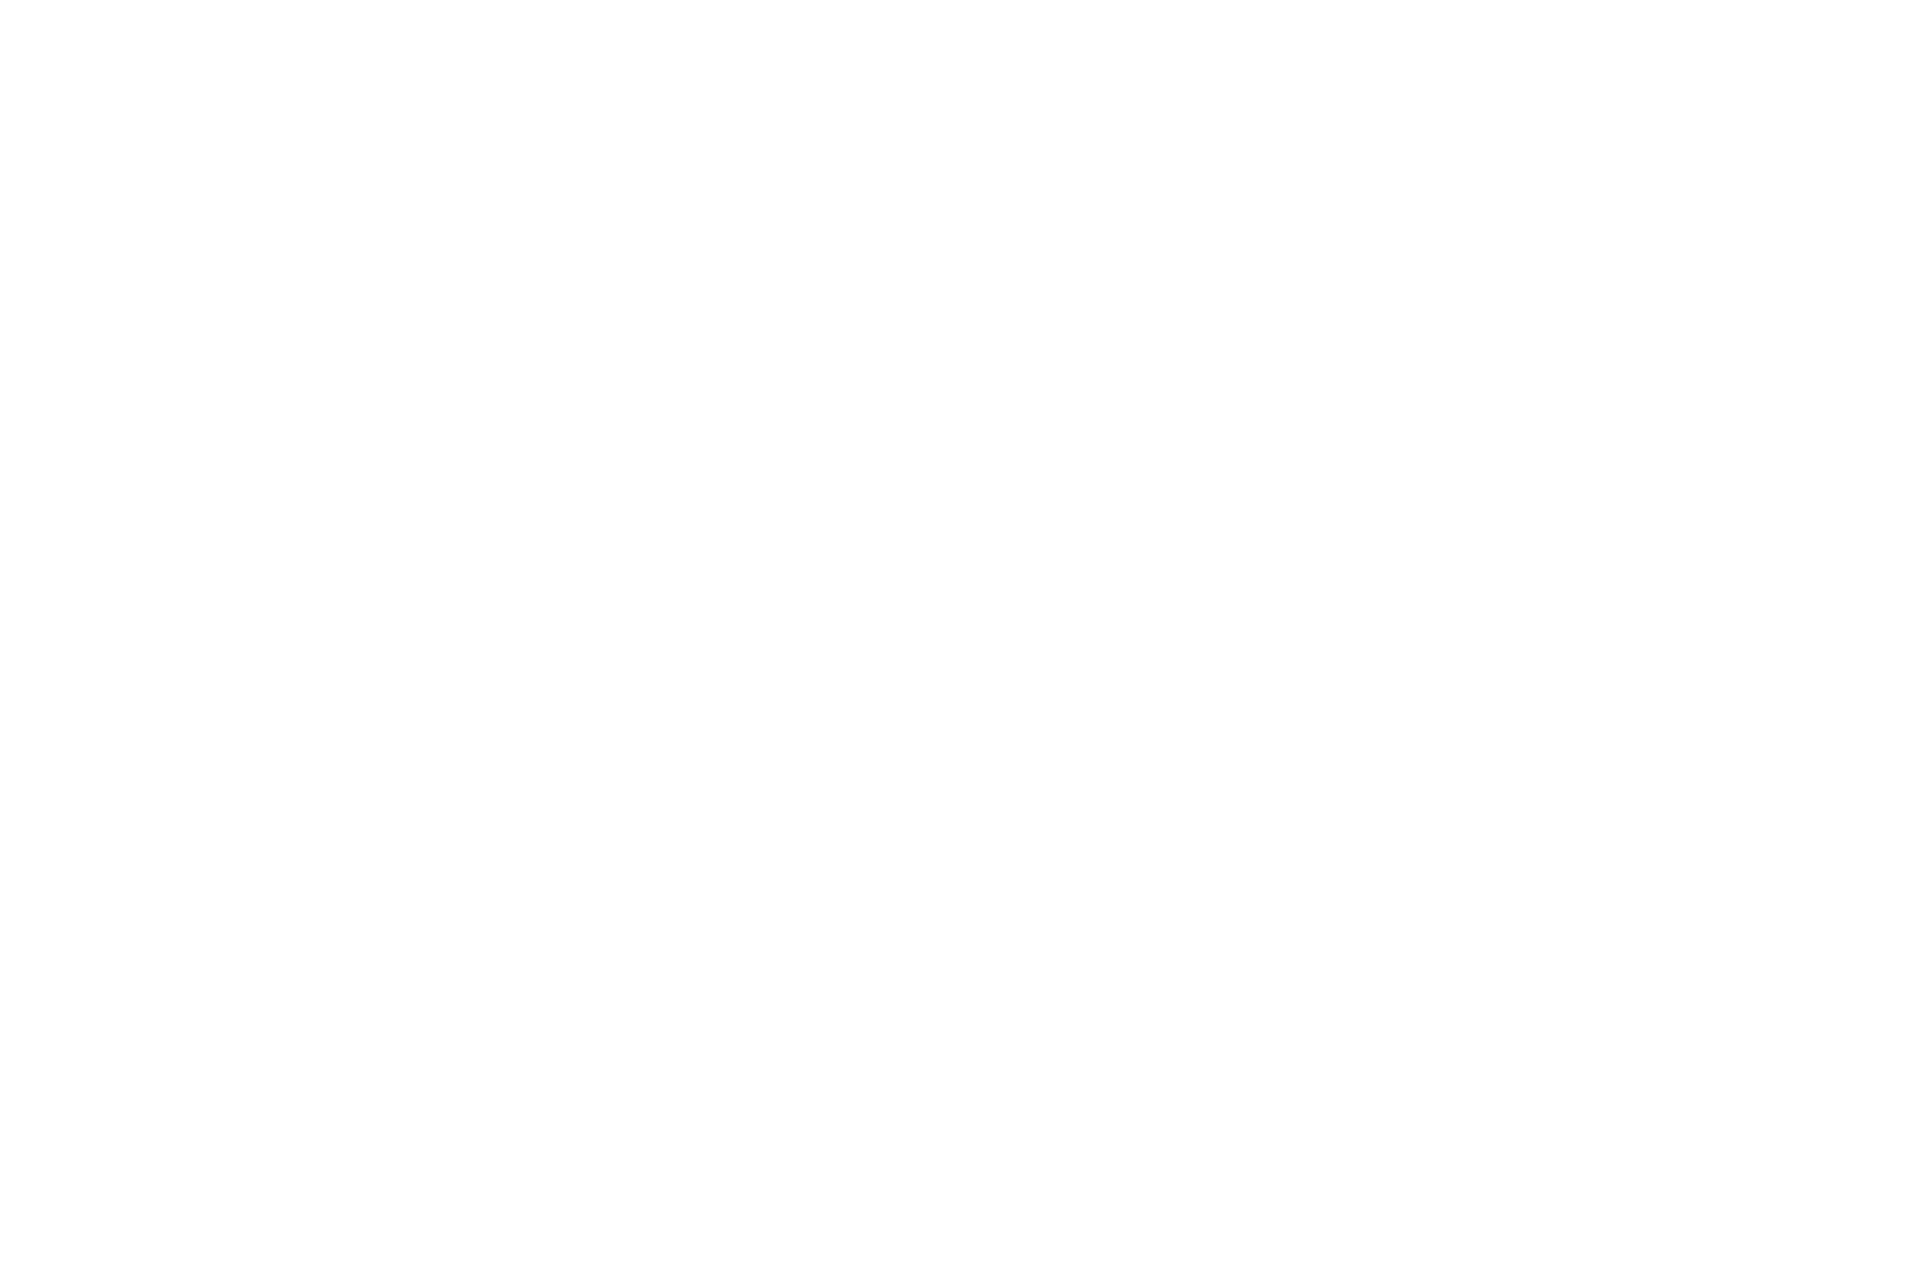 FRI 8/16 - Holly Shorts Film Festival - Hollywood, CA   More Info coming soon!